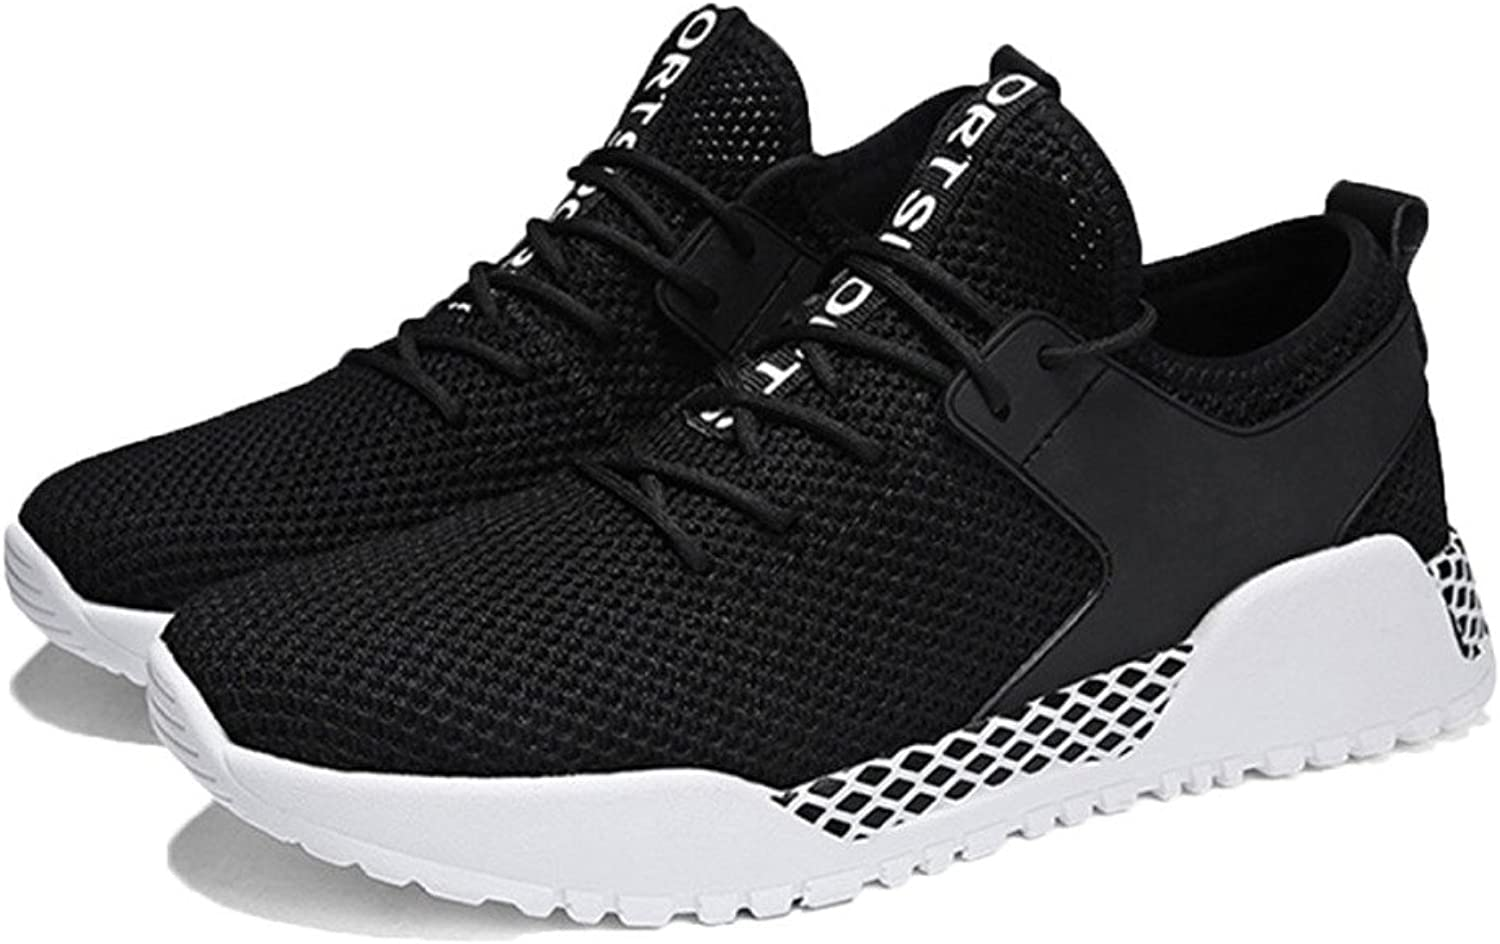 Running shoes Men Unisex Summer Breathable Mesh Sneakers Casual shoes